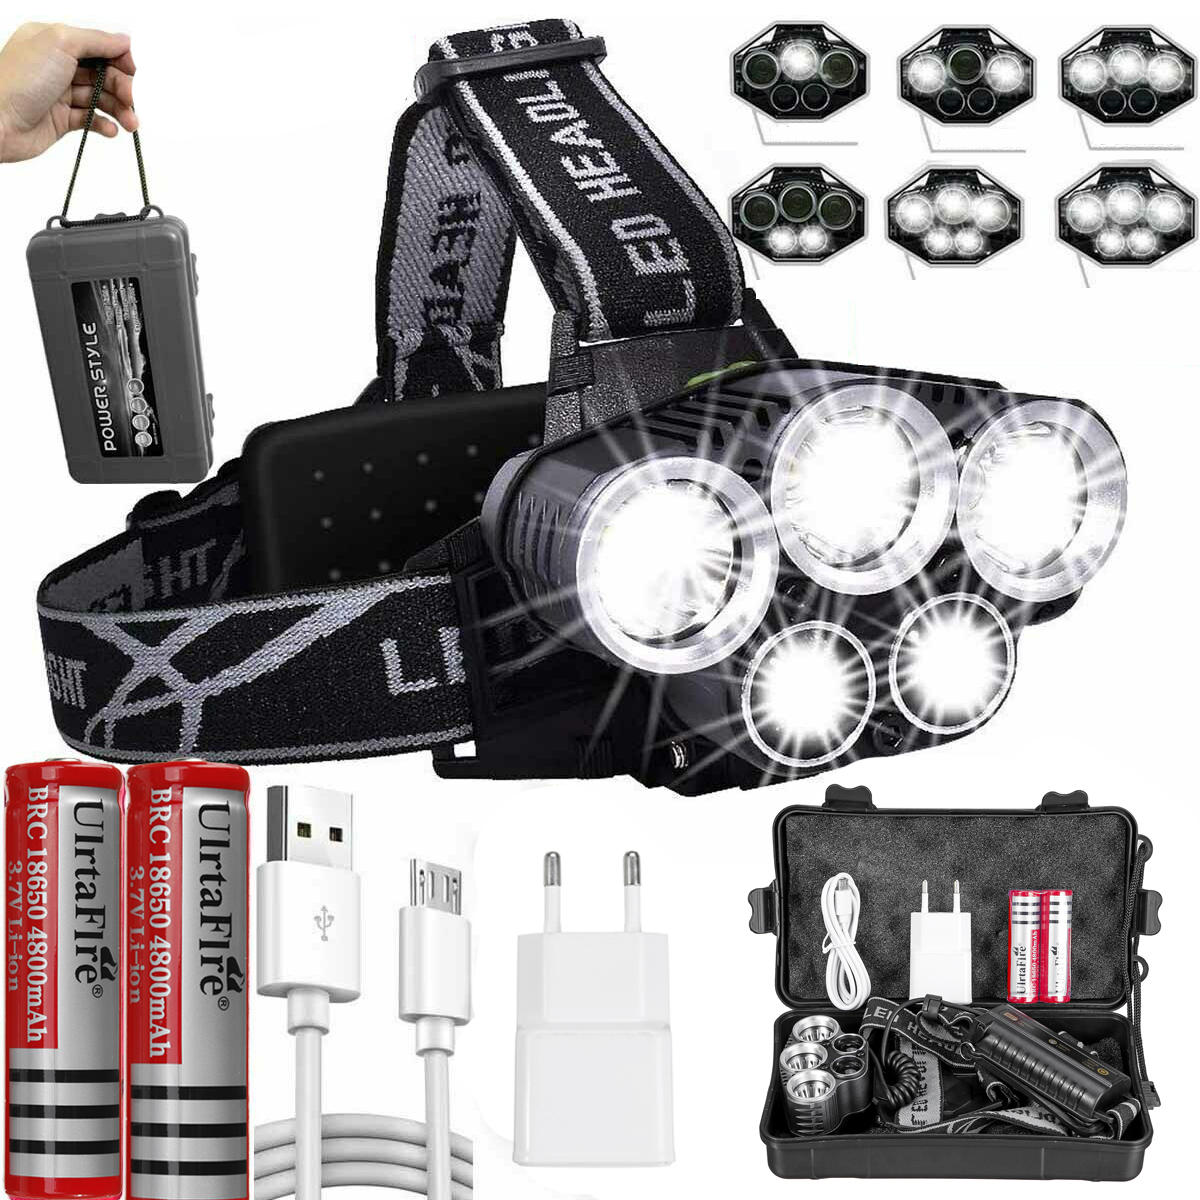 BIKIGHT 3400LM T6+XPE LED Bike Headlamp Rechargeable 6 Modes Flashlight Camping Cycling Night Warning Lamp